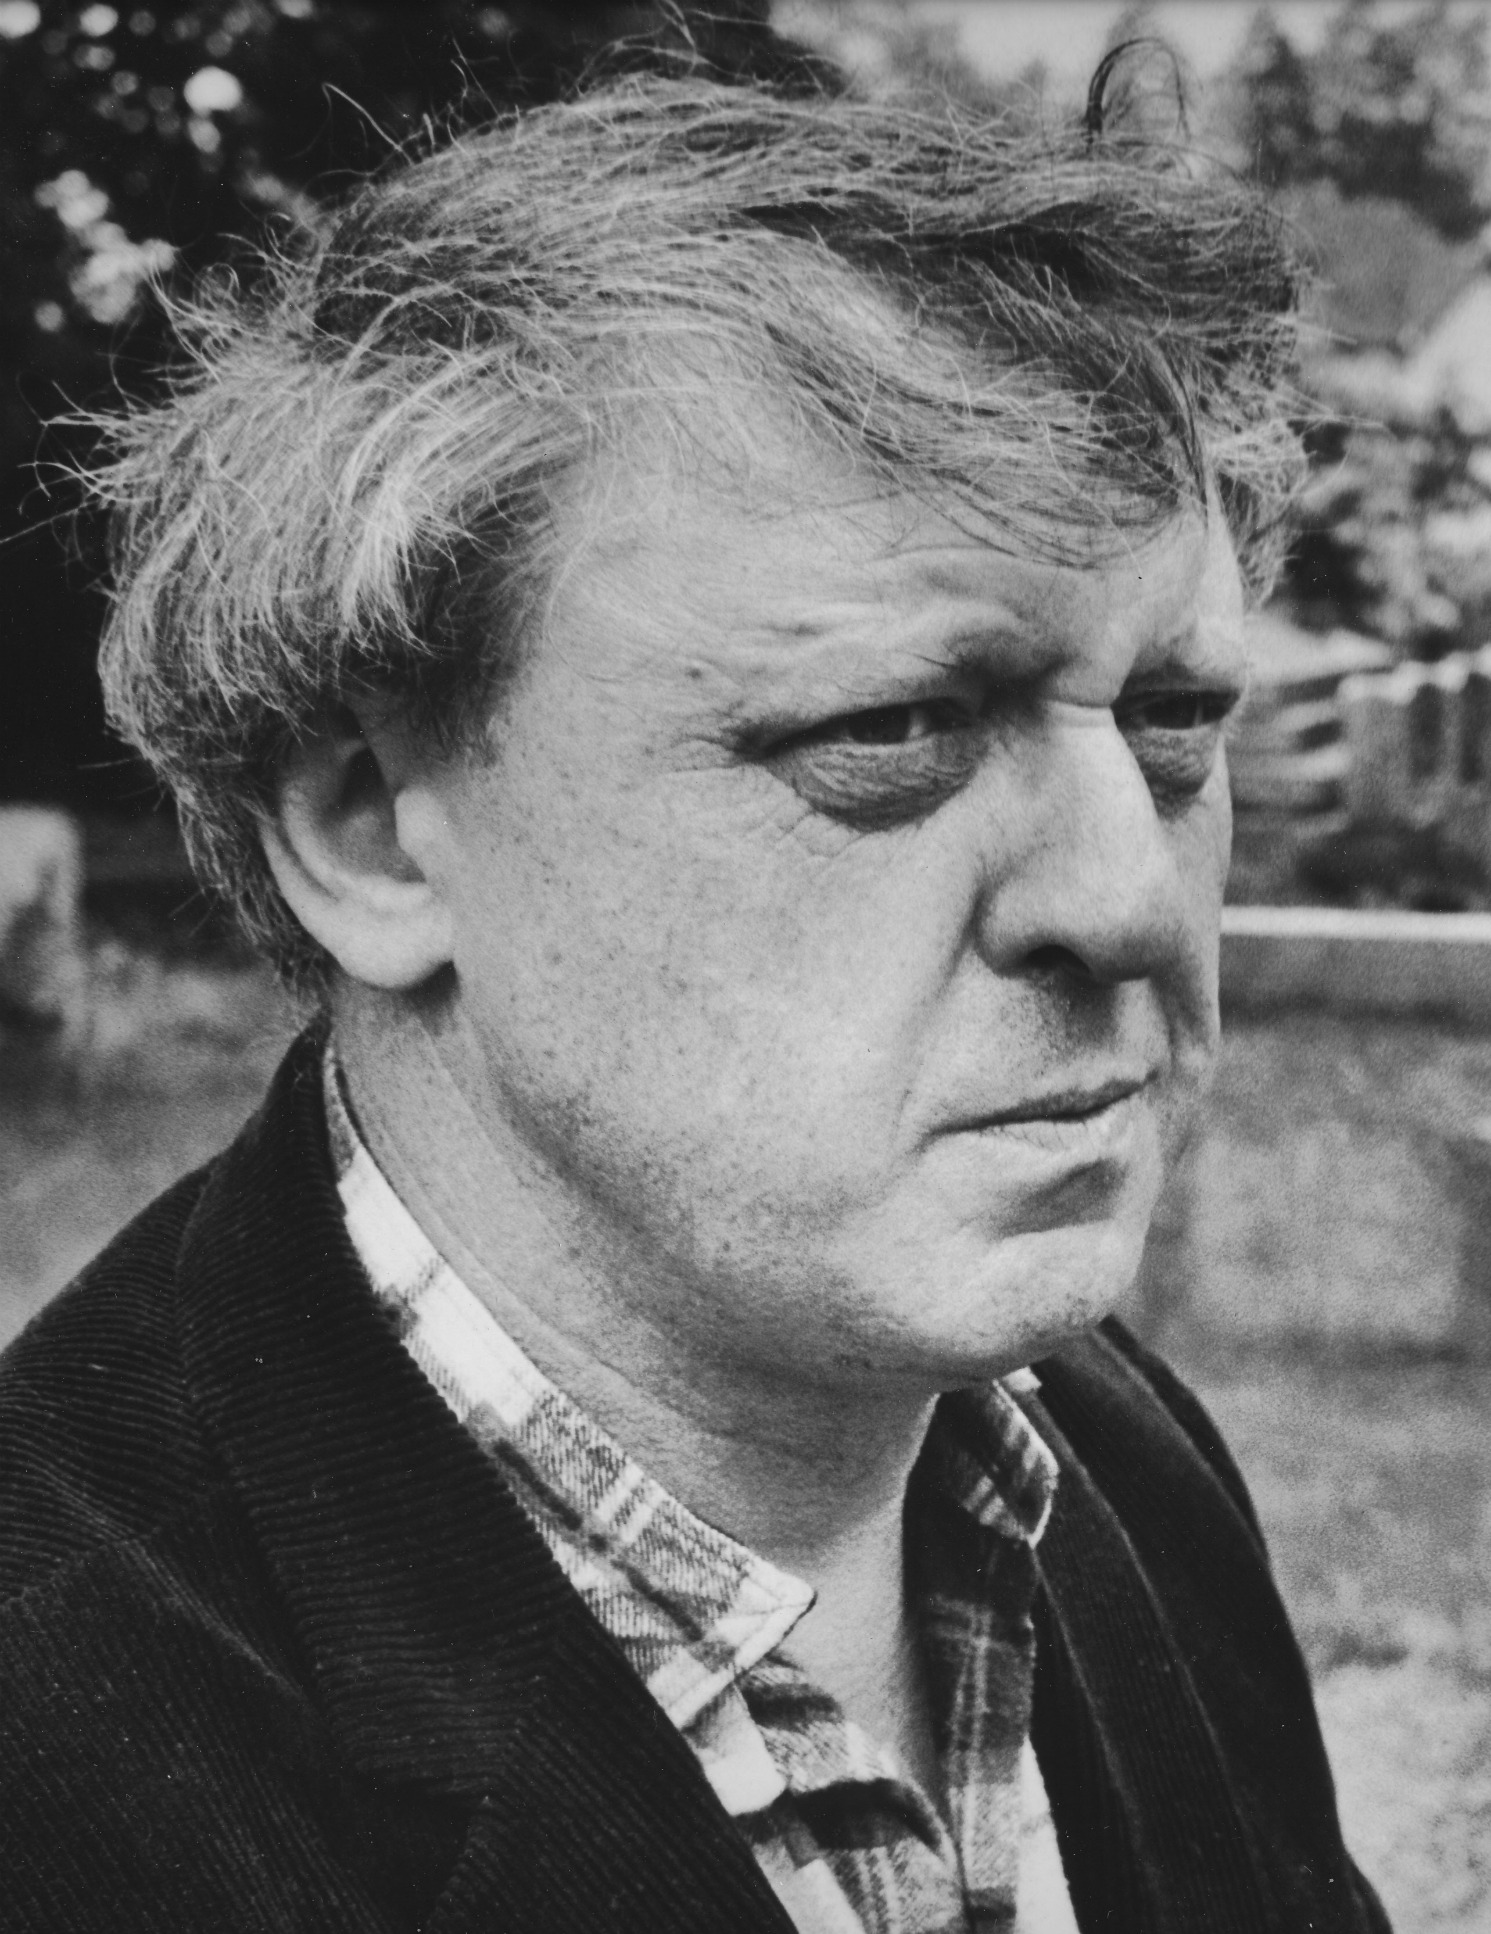 a biography of anthony burgess an english novelist John wilson, aka anthony burgess, died in november 1993 the author of 32 novels, various televison/film scripts, translations from various languages of plays, opera libretti, etc, a composer in his own right, a televison personality, teacher, member of the royal society of literature, etc etc.